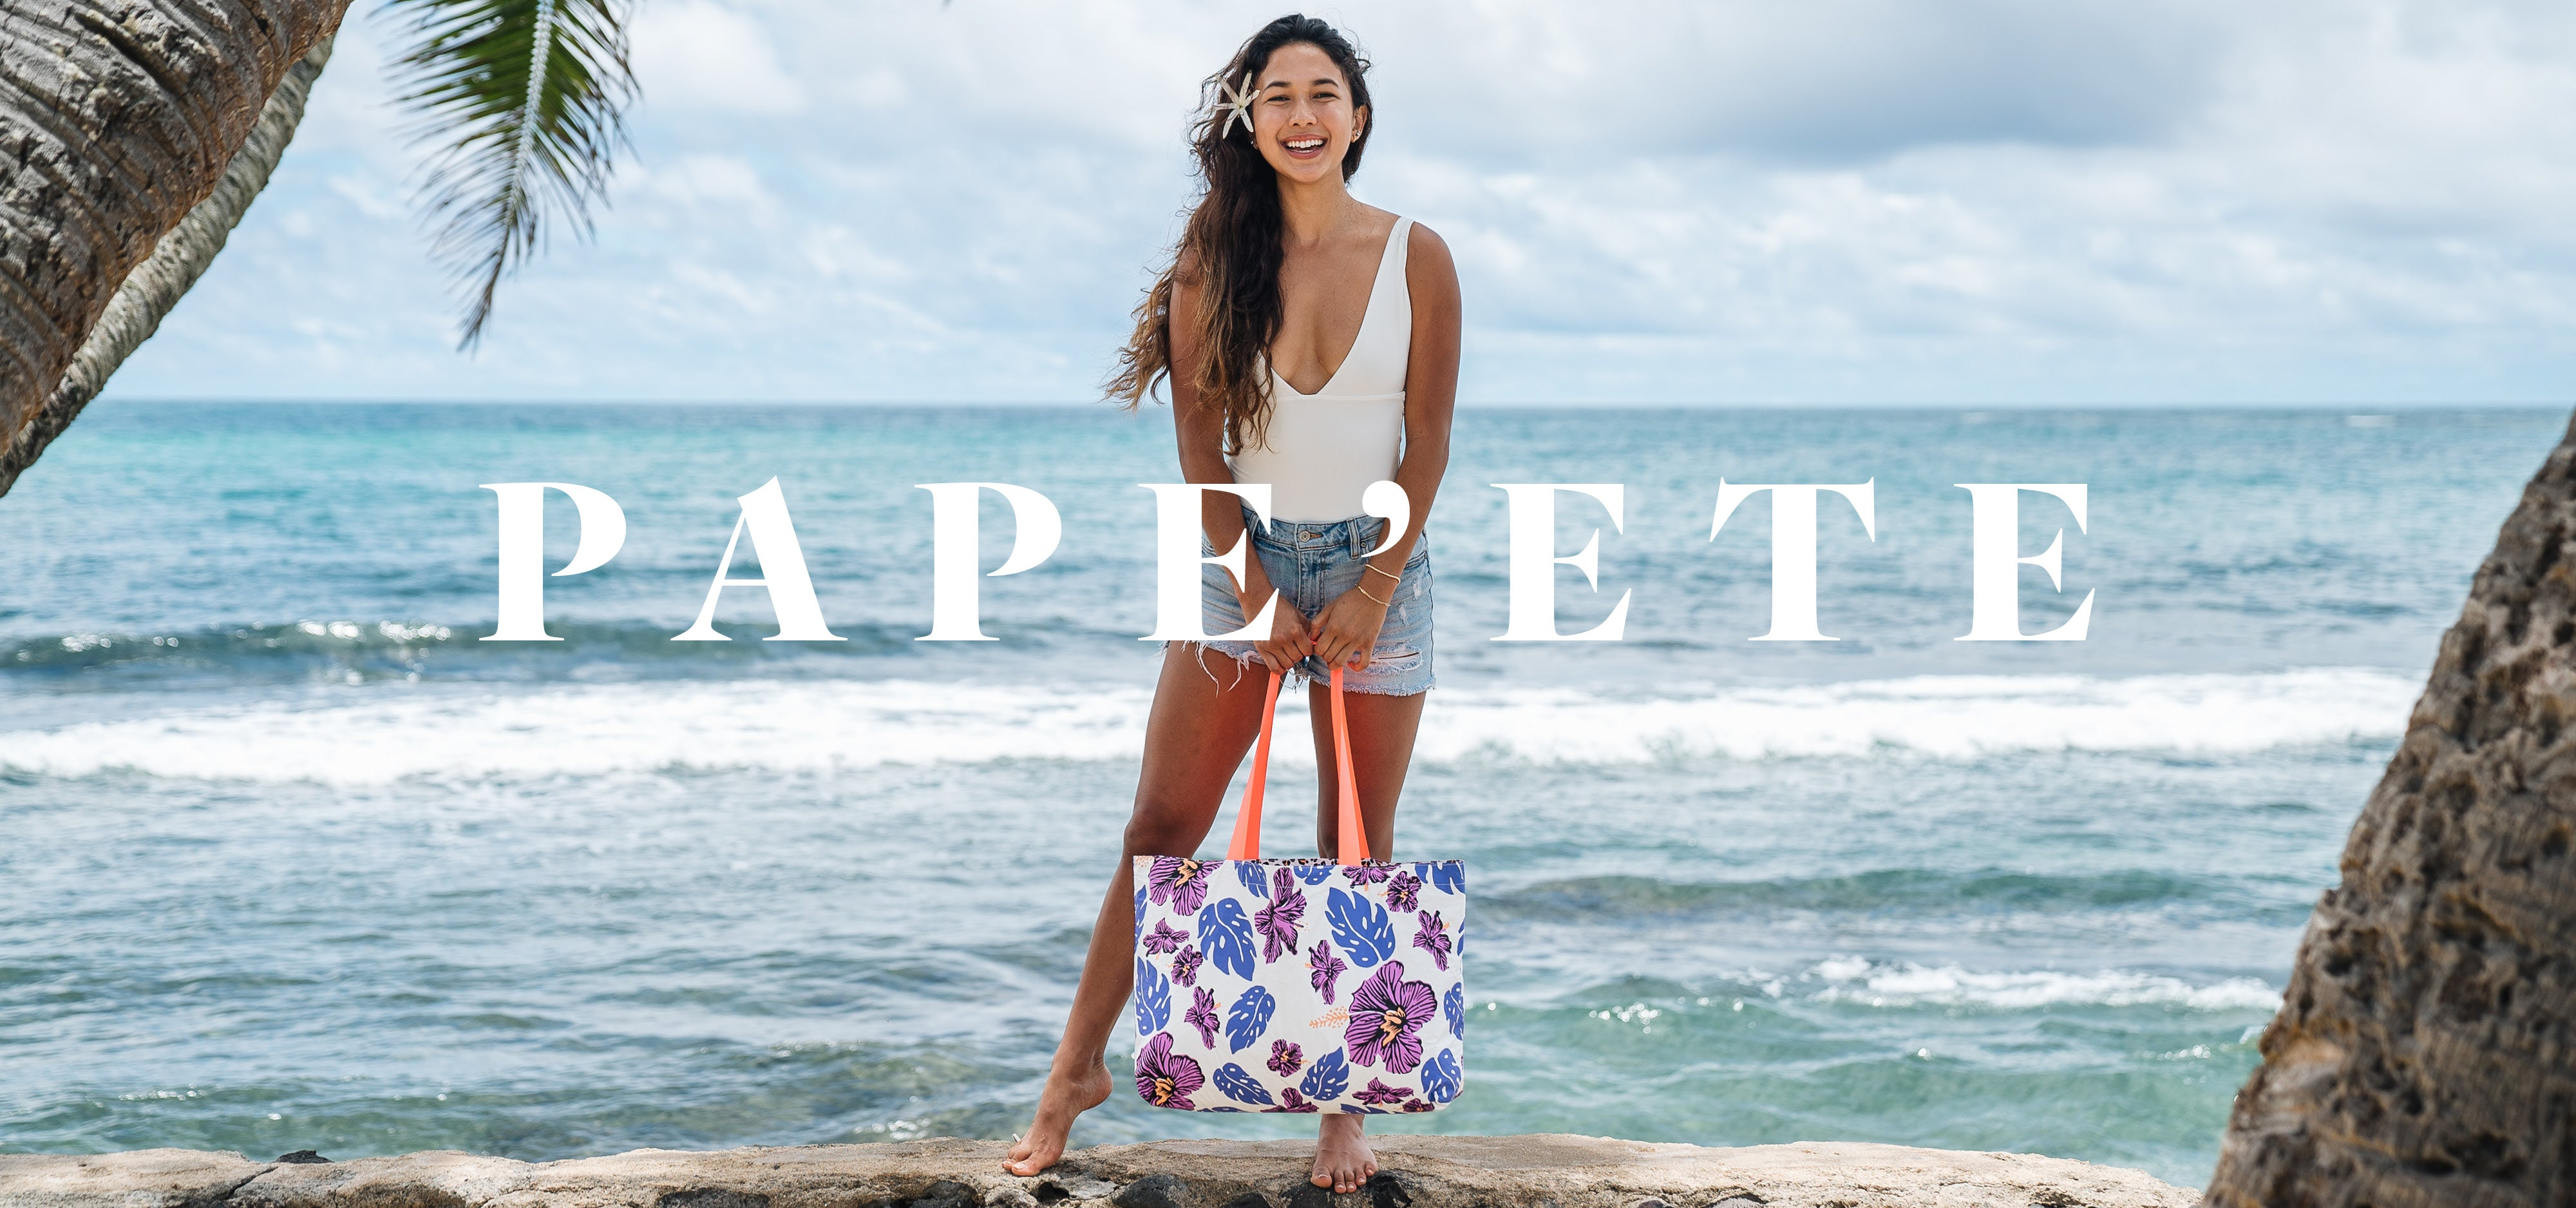 Aloha Collection Pape'ete + Leopard Cub